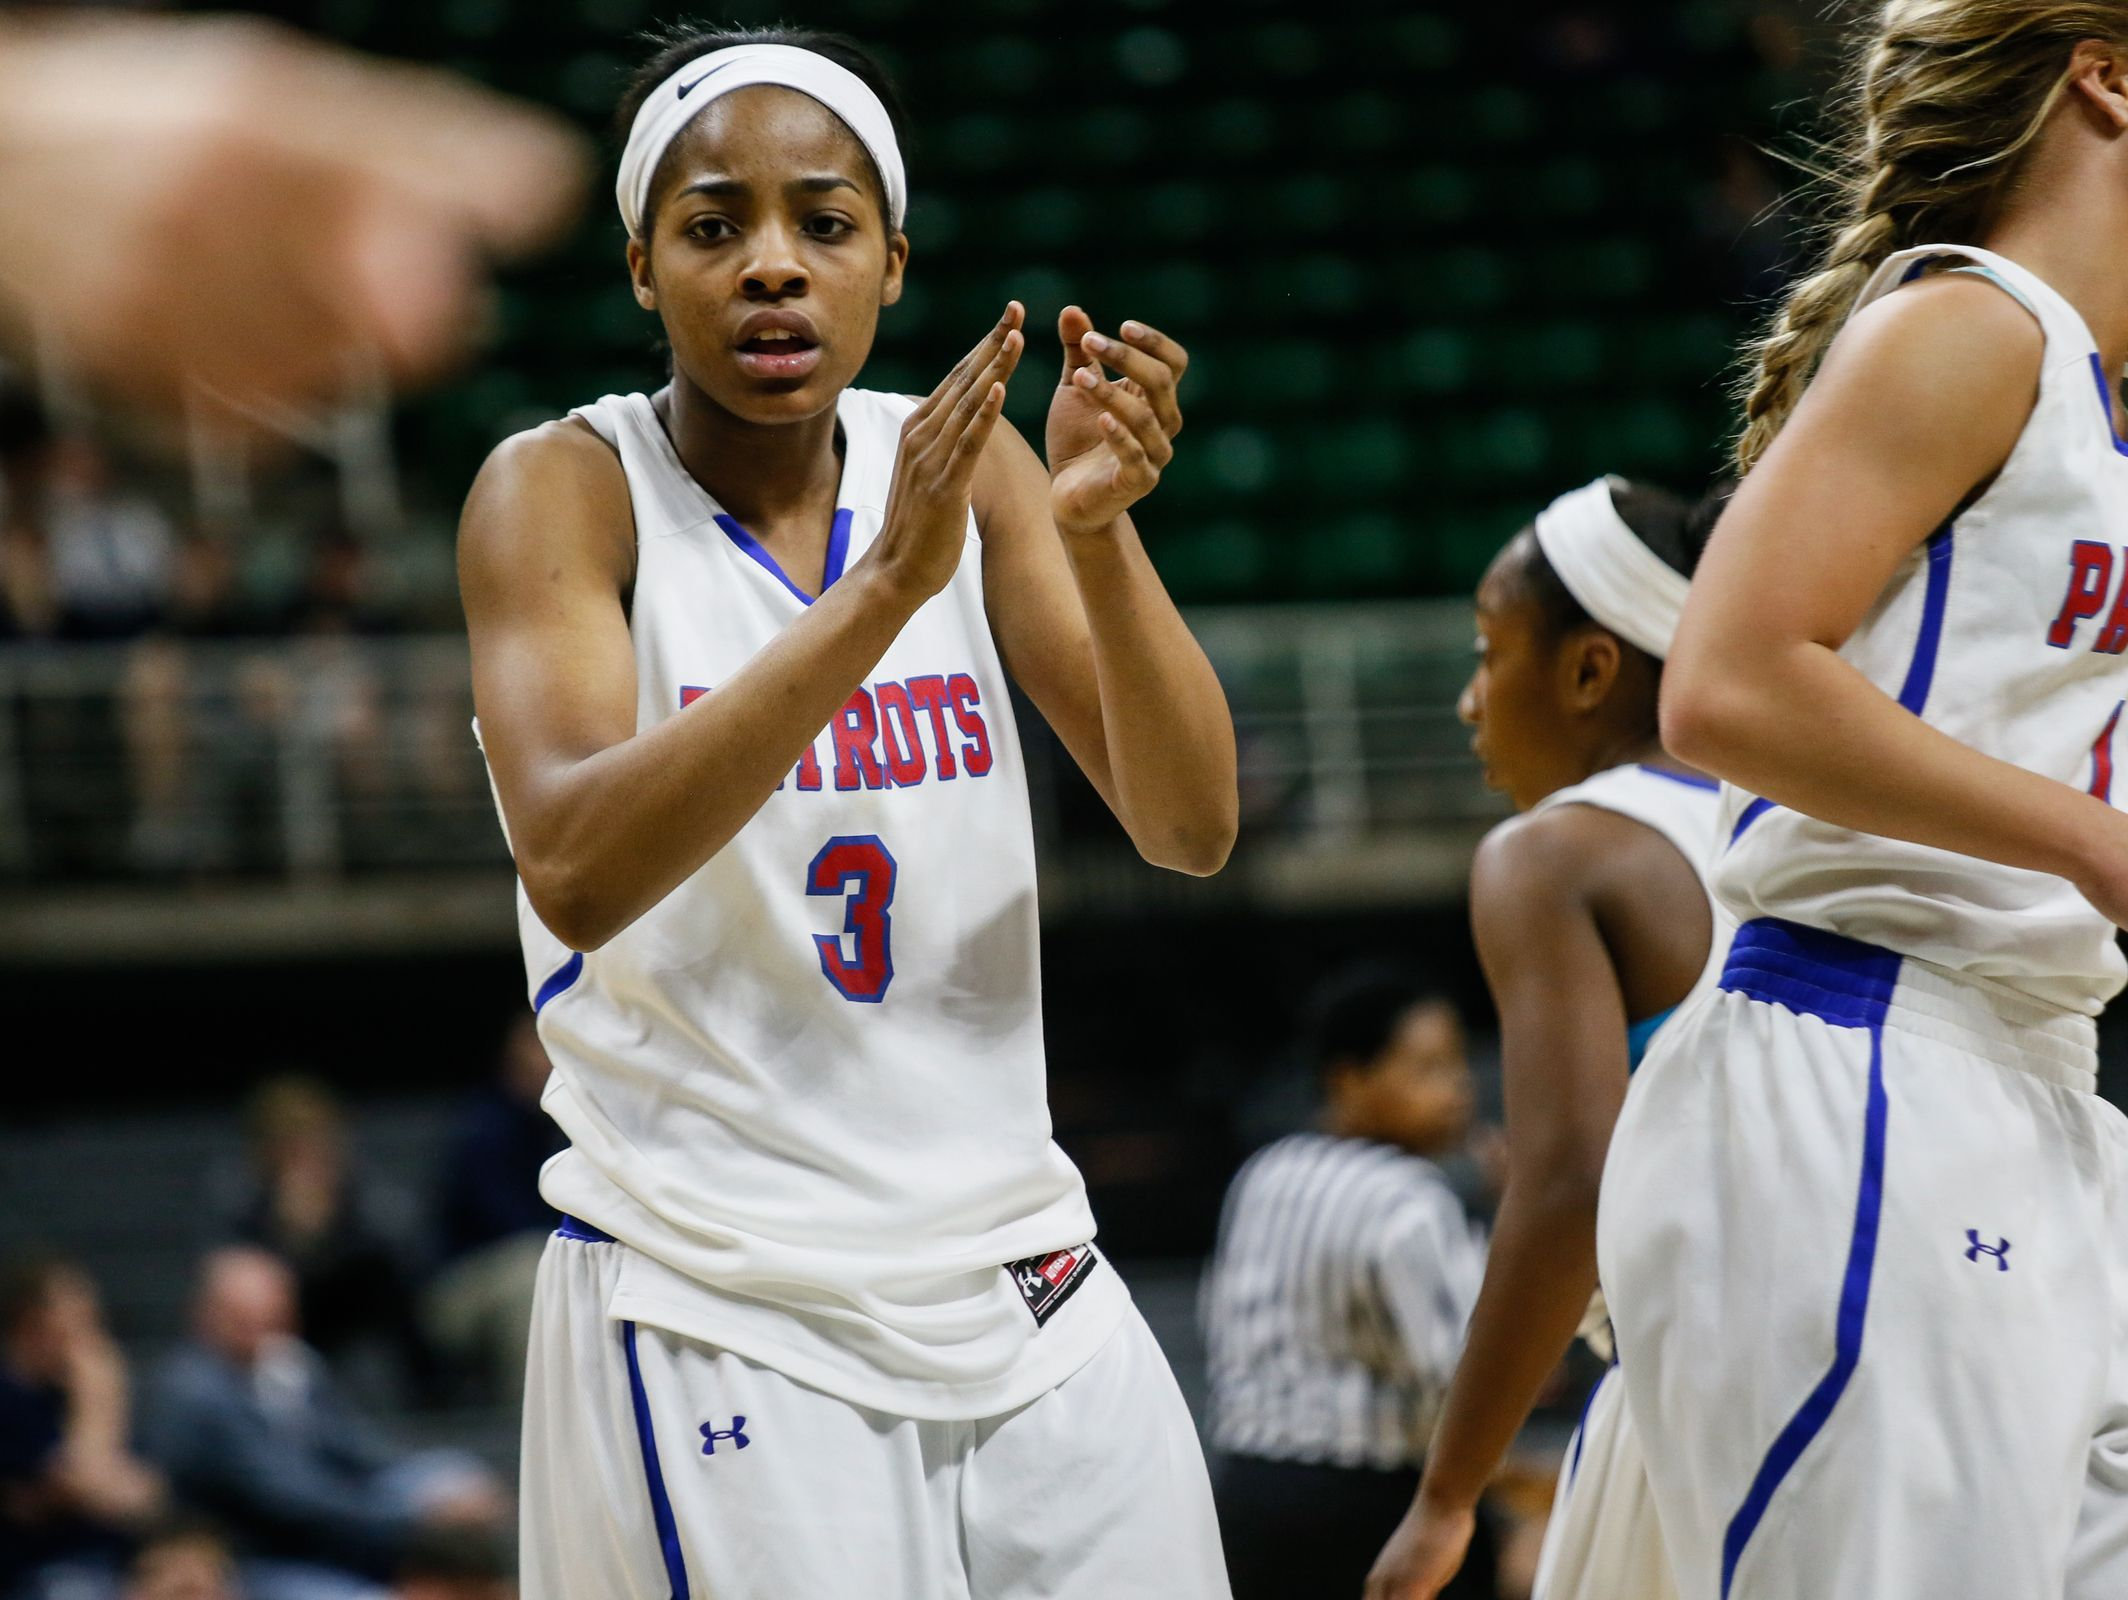 Warren Cousino's Kierra Fletcher claps her hands together after a fould was called during the MHSAA girls basketball Class A game 2 semifinals against Hudsonville at the Breslin Center in East Lansing, Mich. on Friday, March 18, 2016.